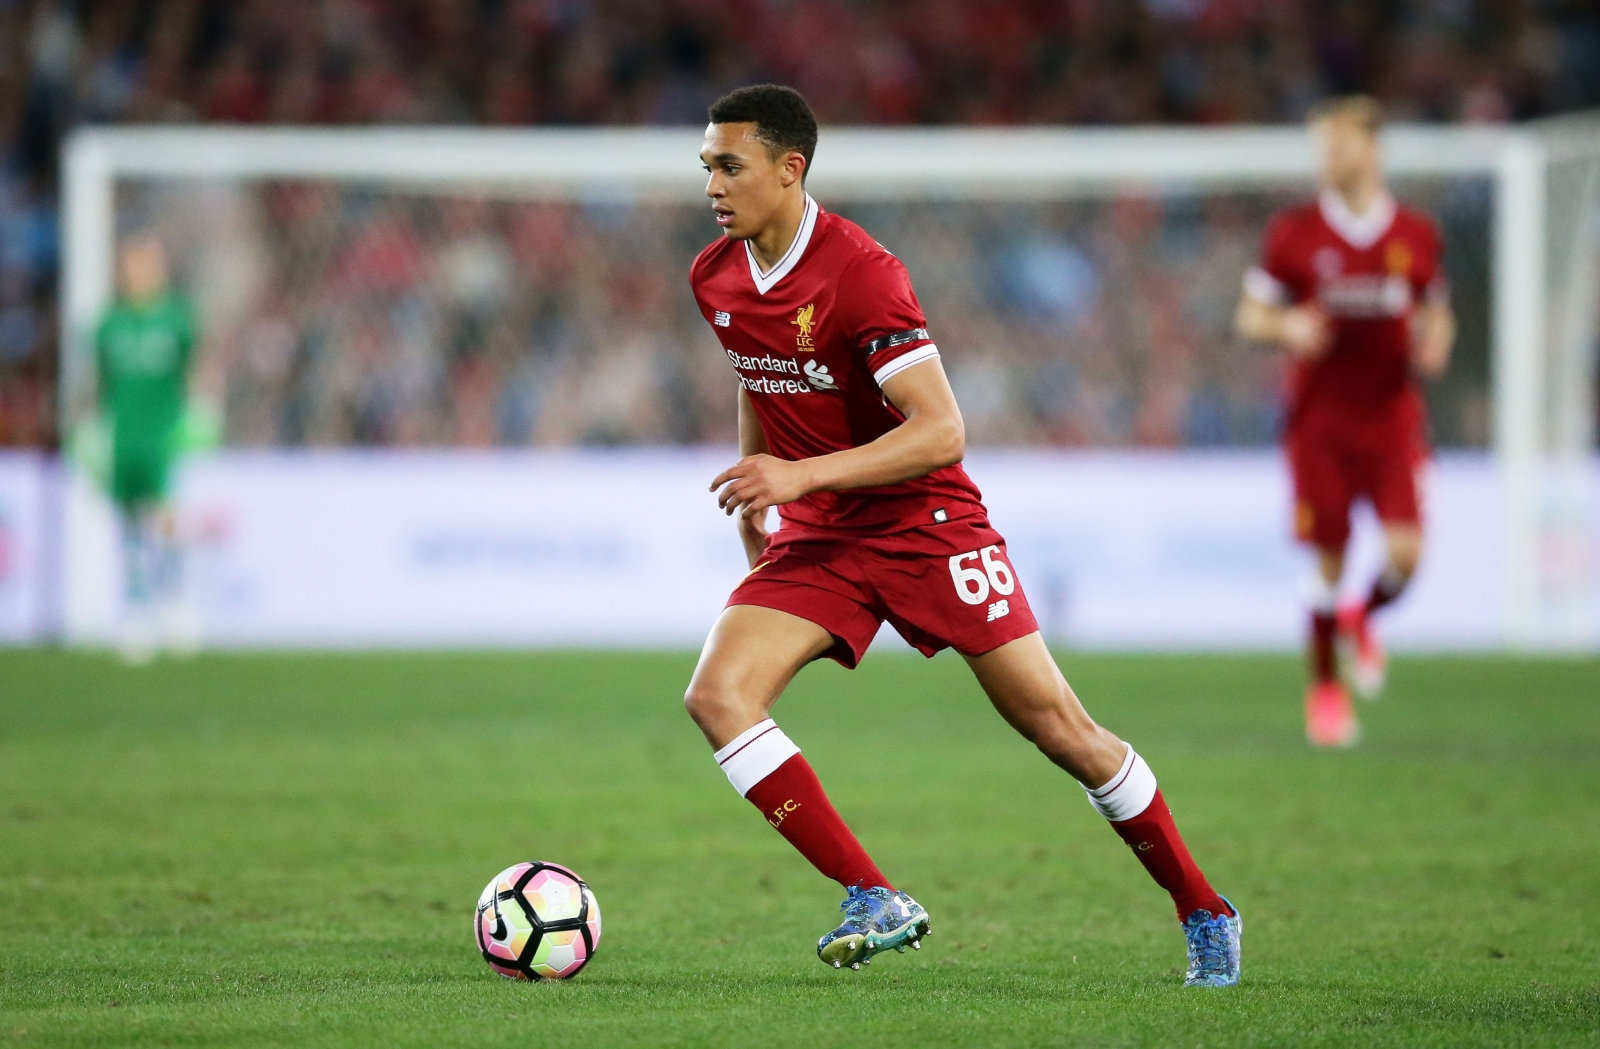 liverpool-boss-jurgen-klopp-praises-dead-cheeky-trent-alexander-arnold-after-champions-league-goal